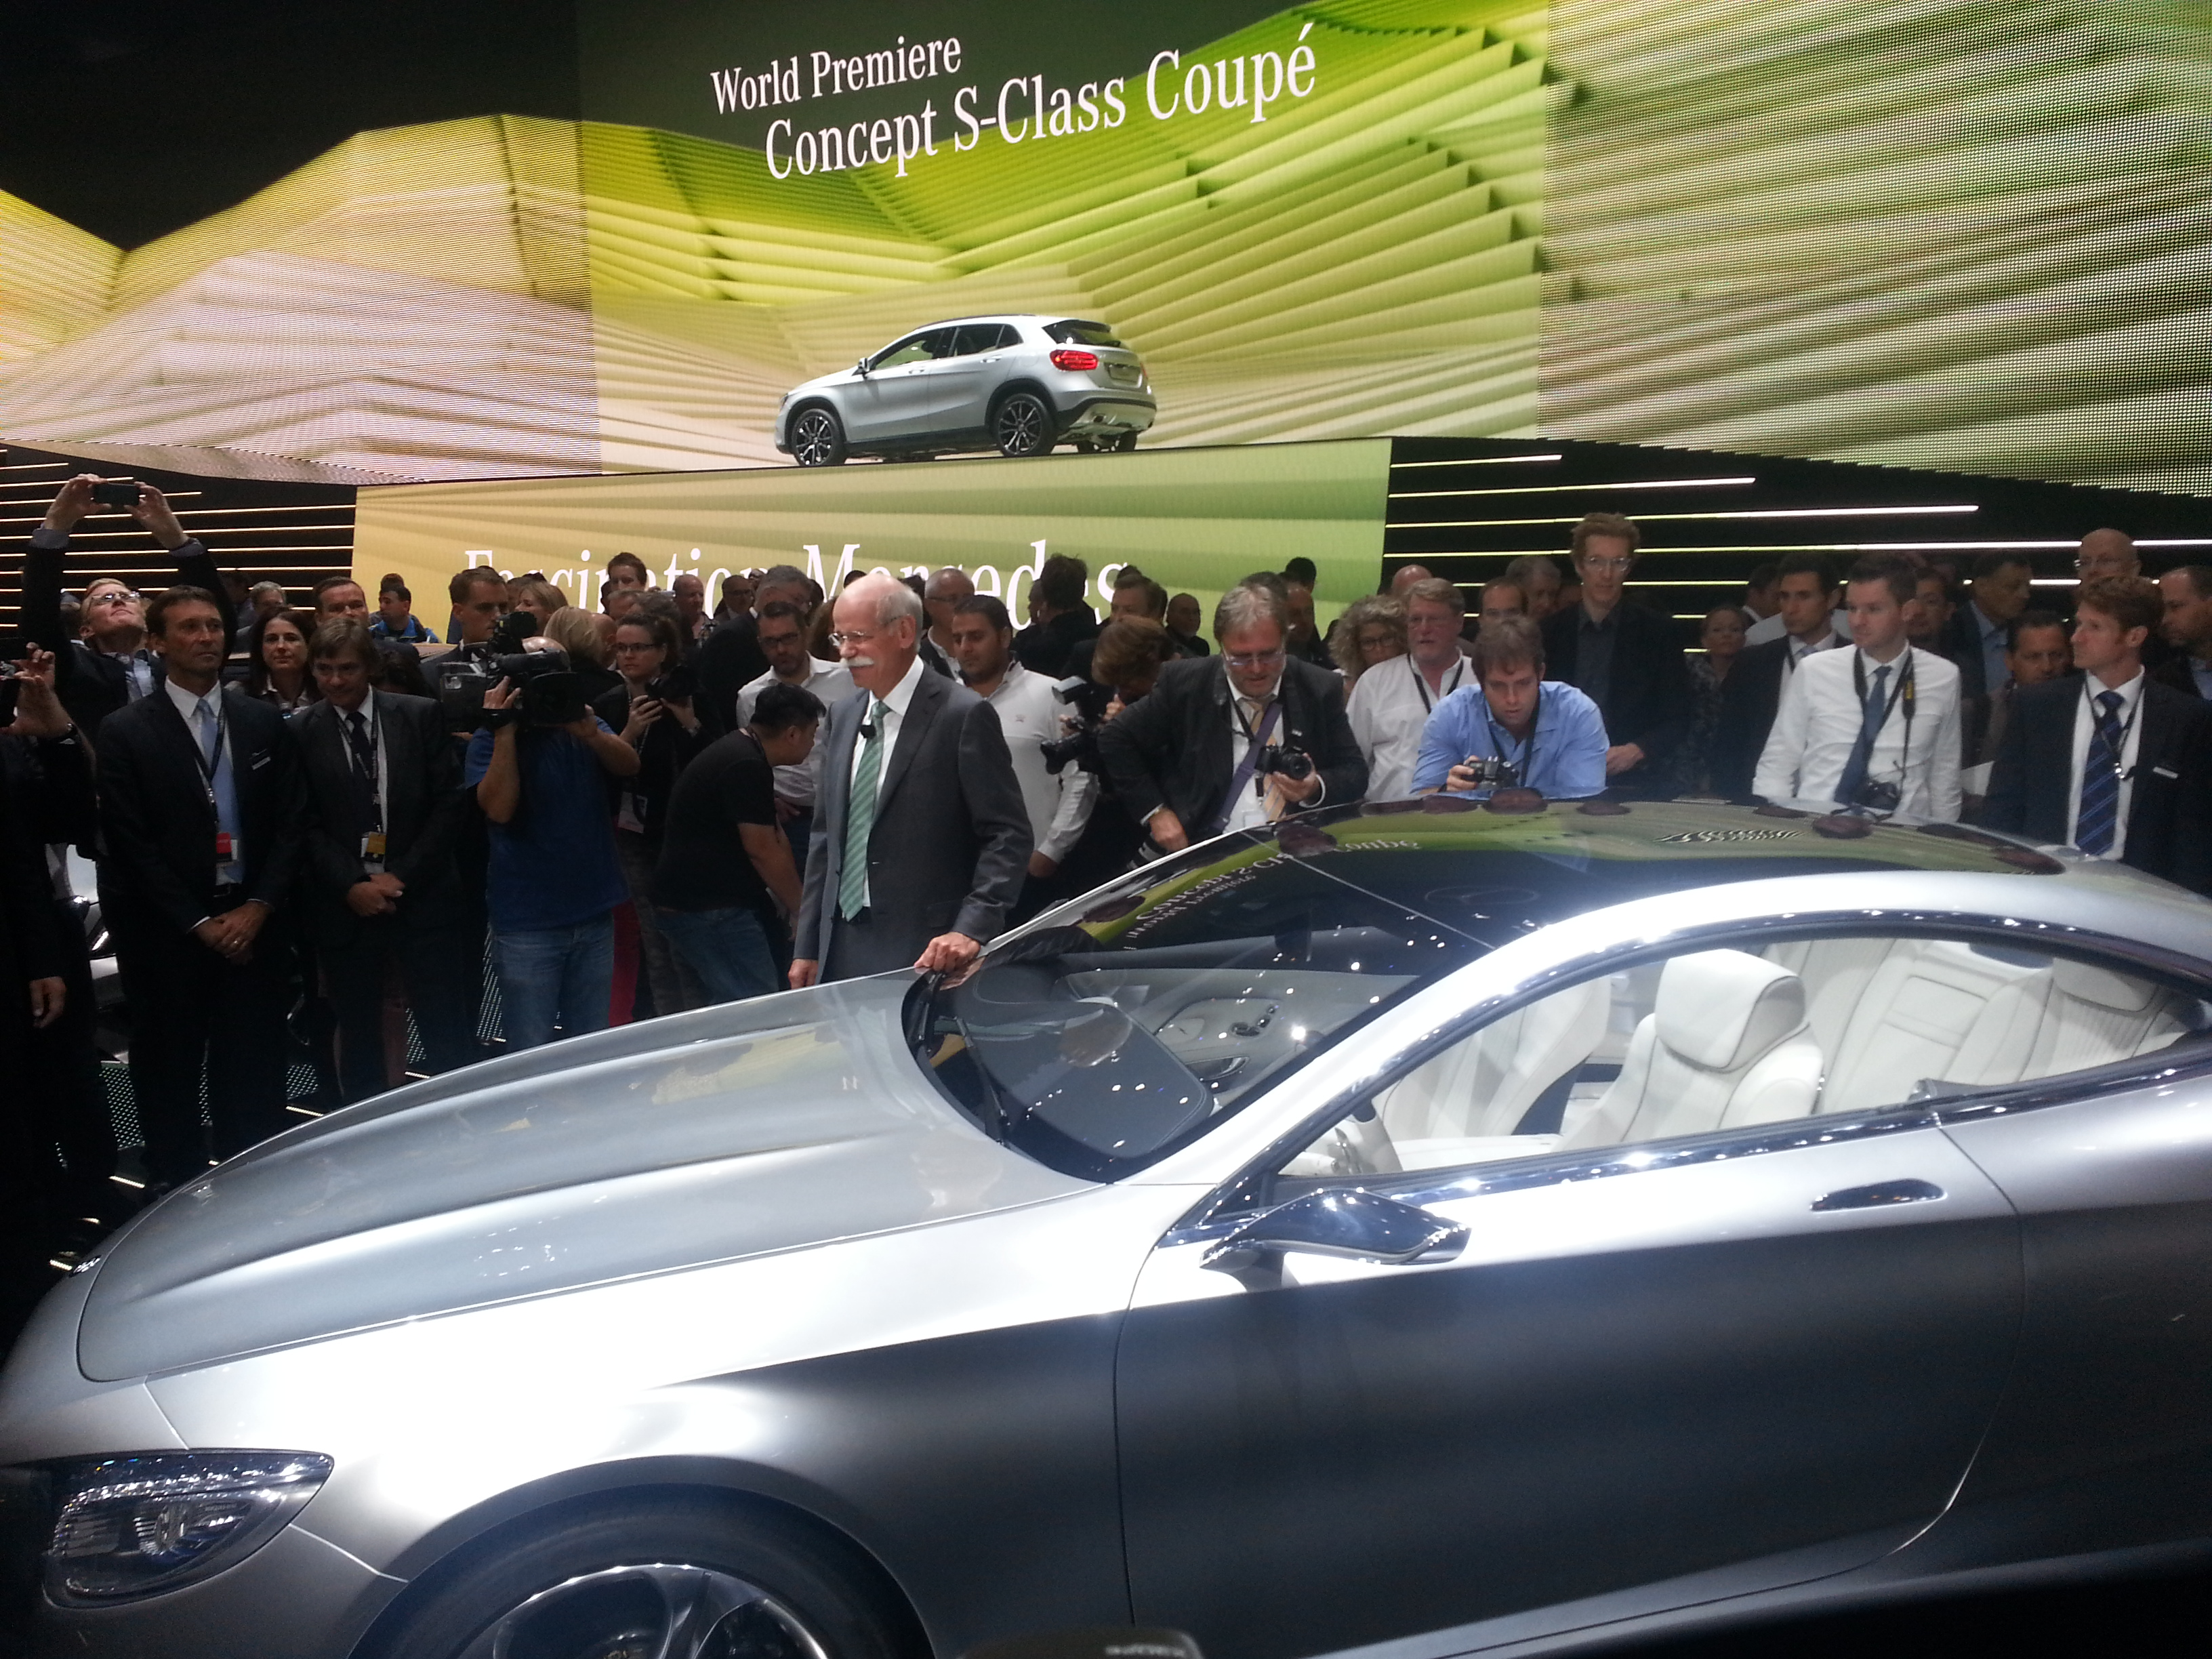 Mercedes-Benz Chairman Dieter Zetsche with S-Class Coupe Concept